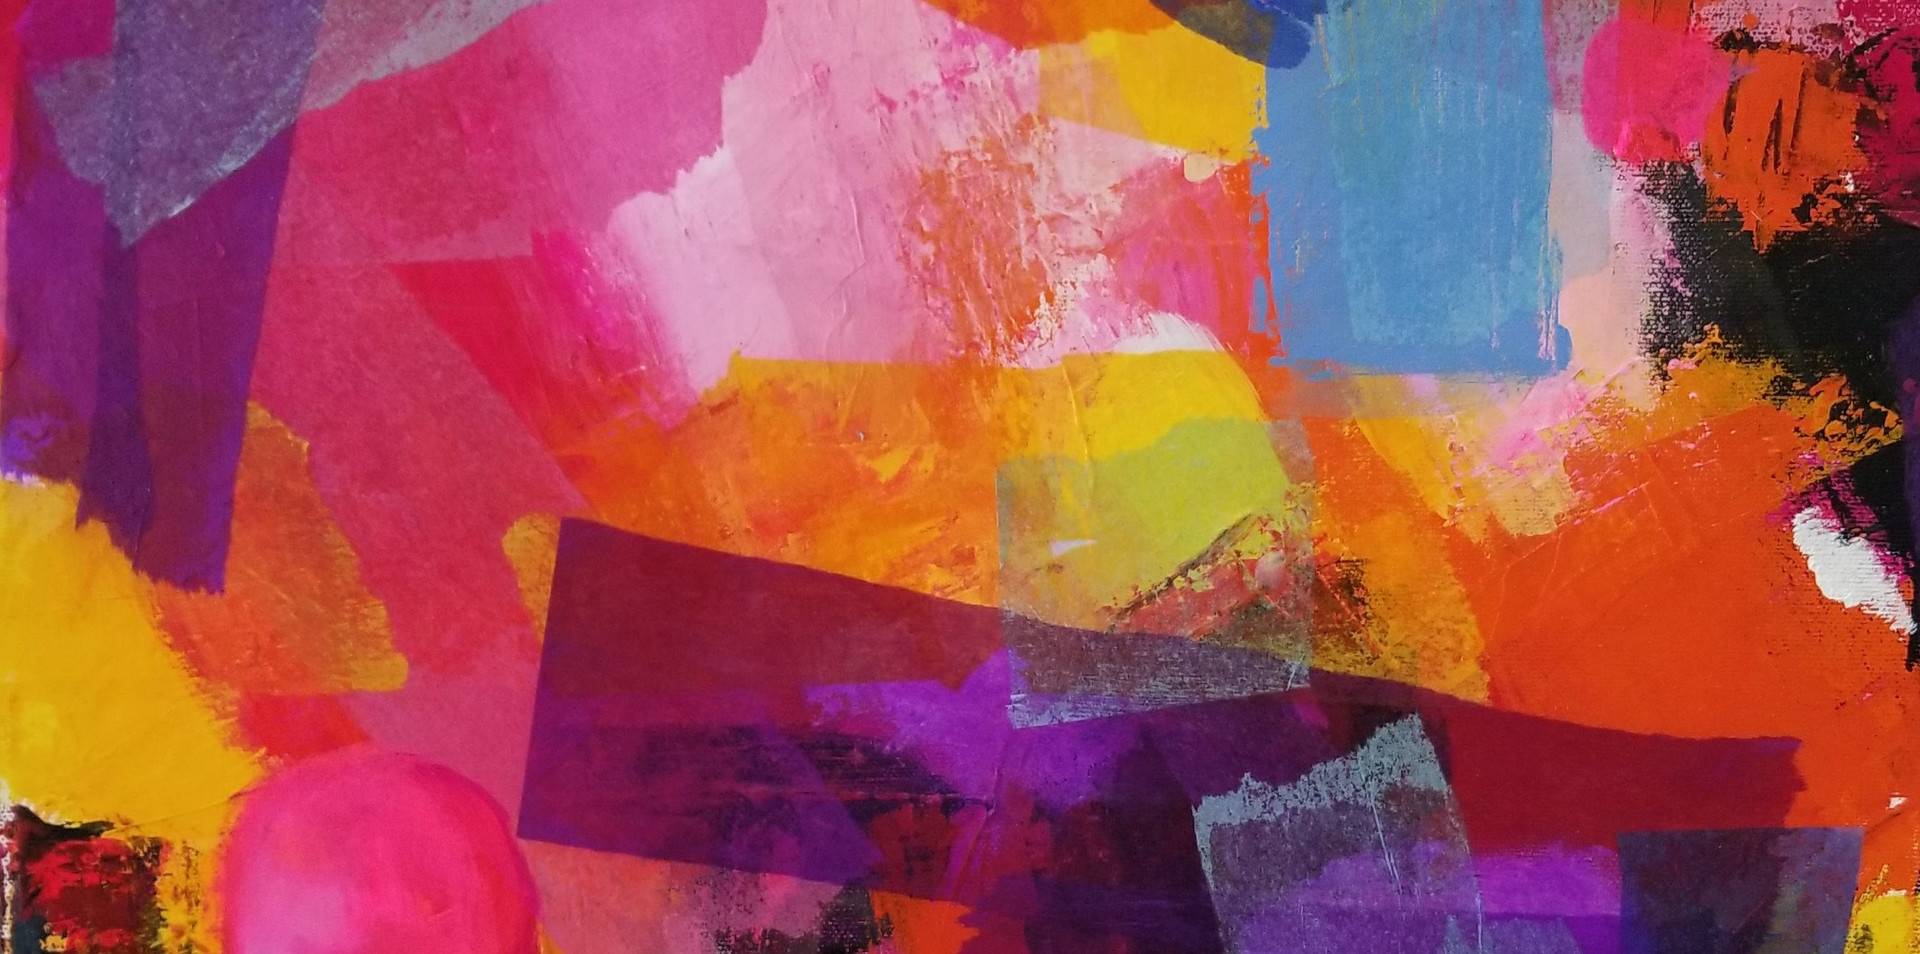 Abstract in Pink No. 1